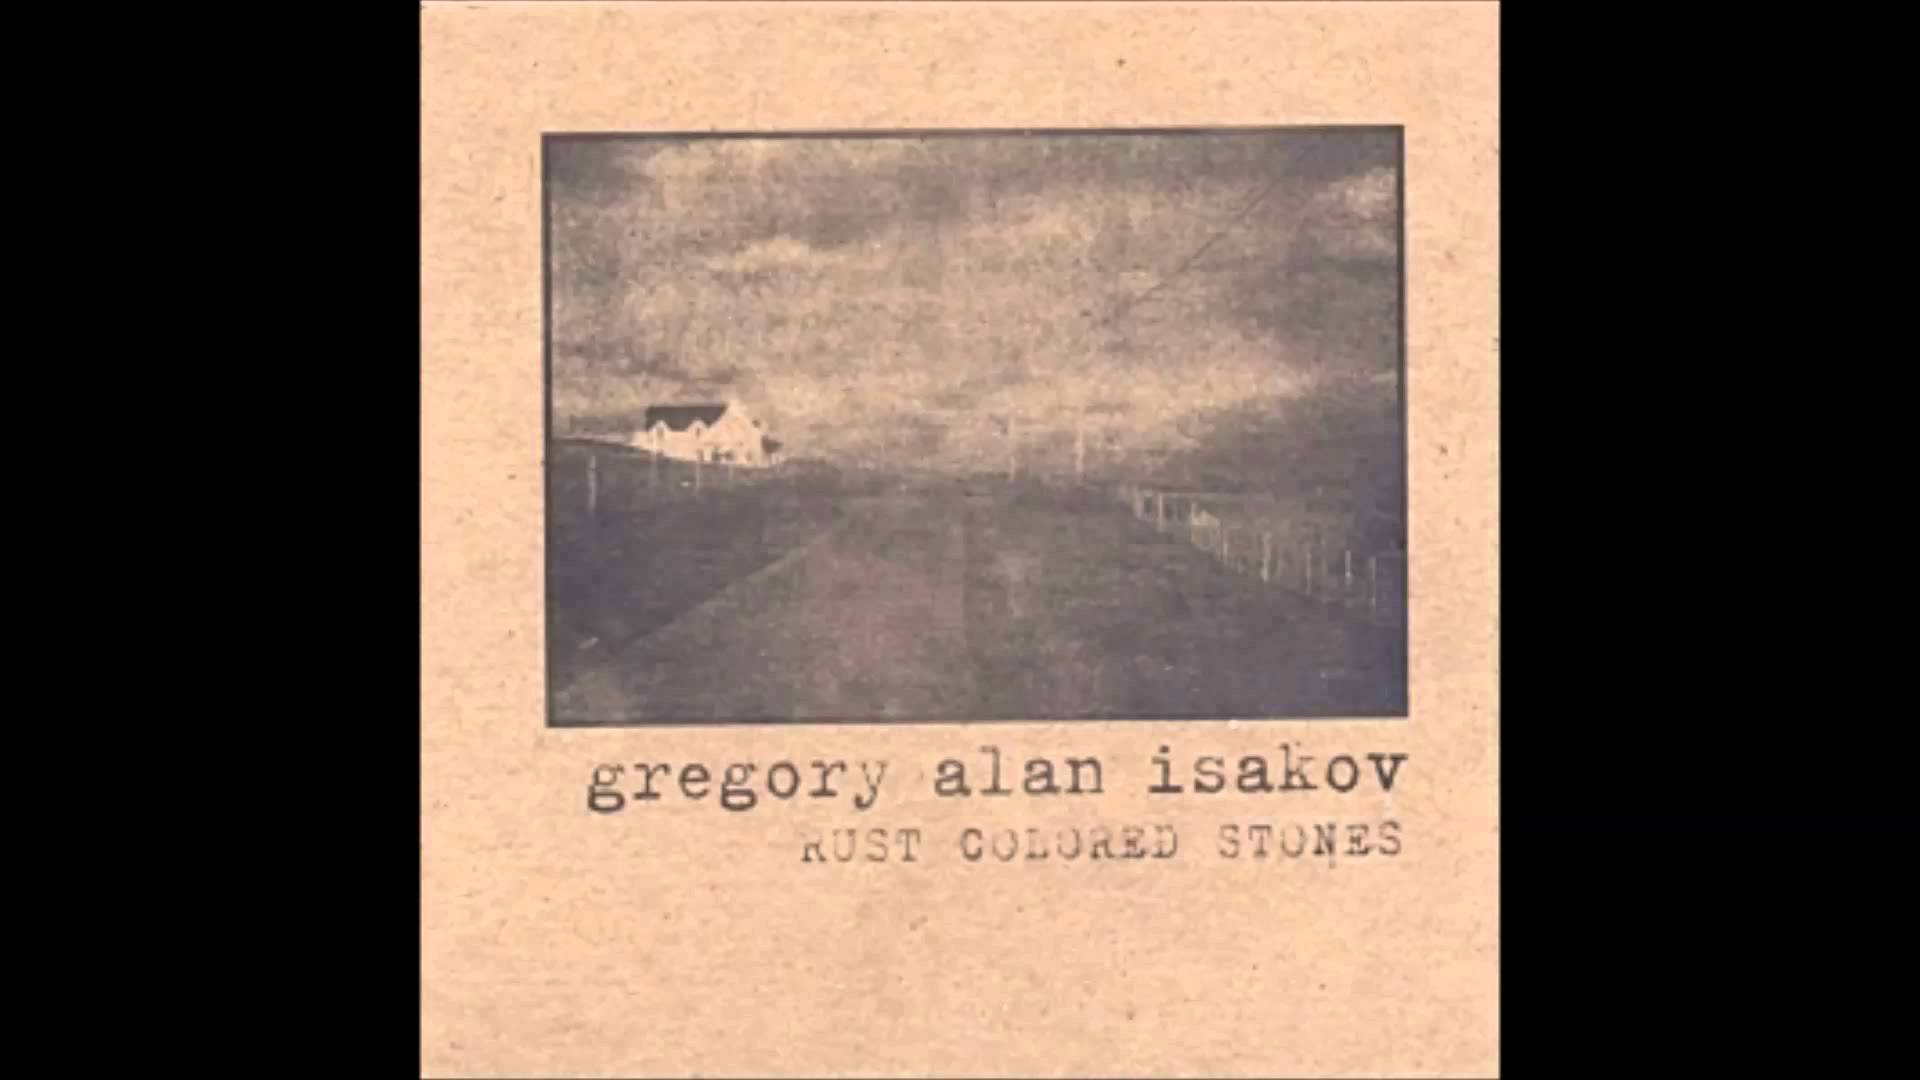 Gregory Alan Isakov - Arms in the Air - YouTube